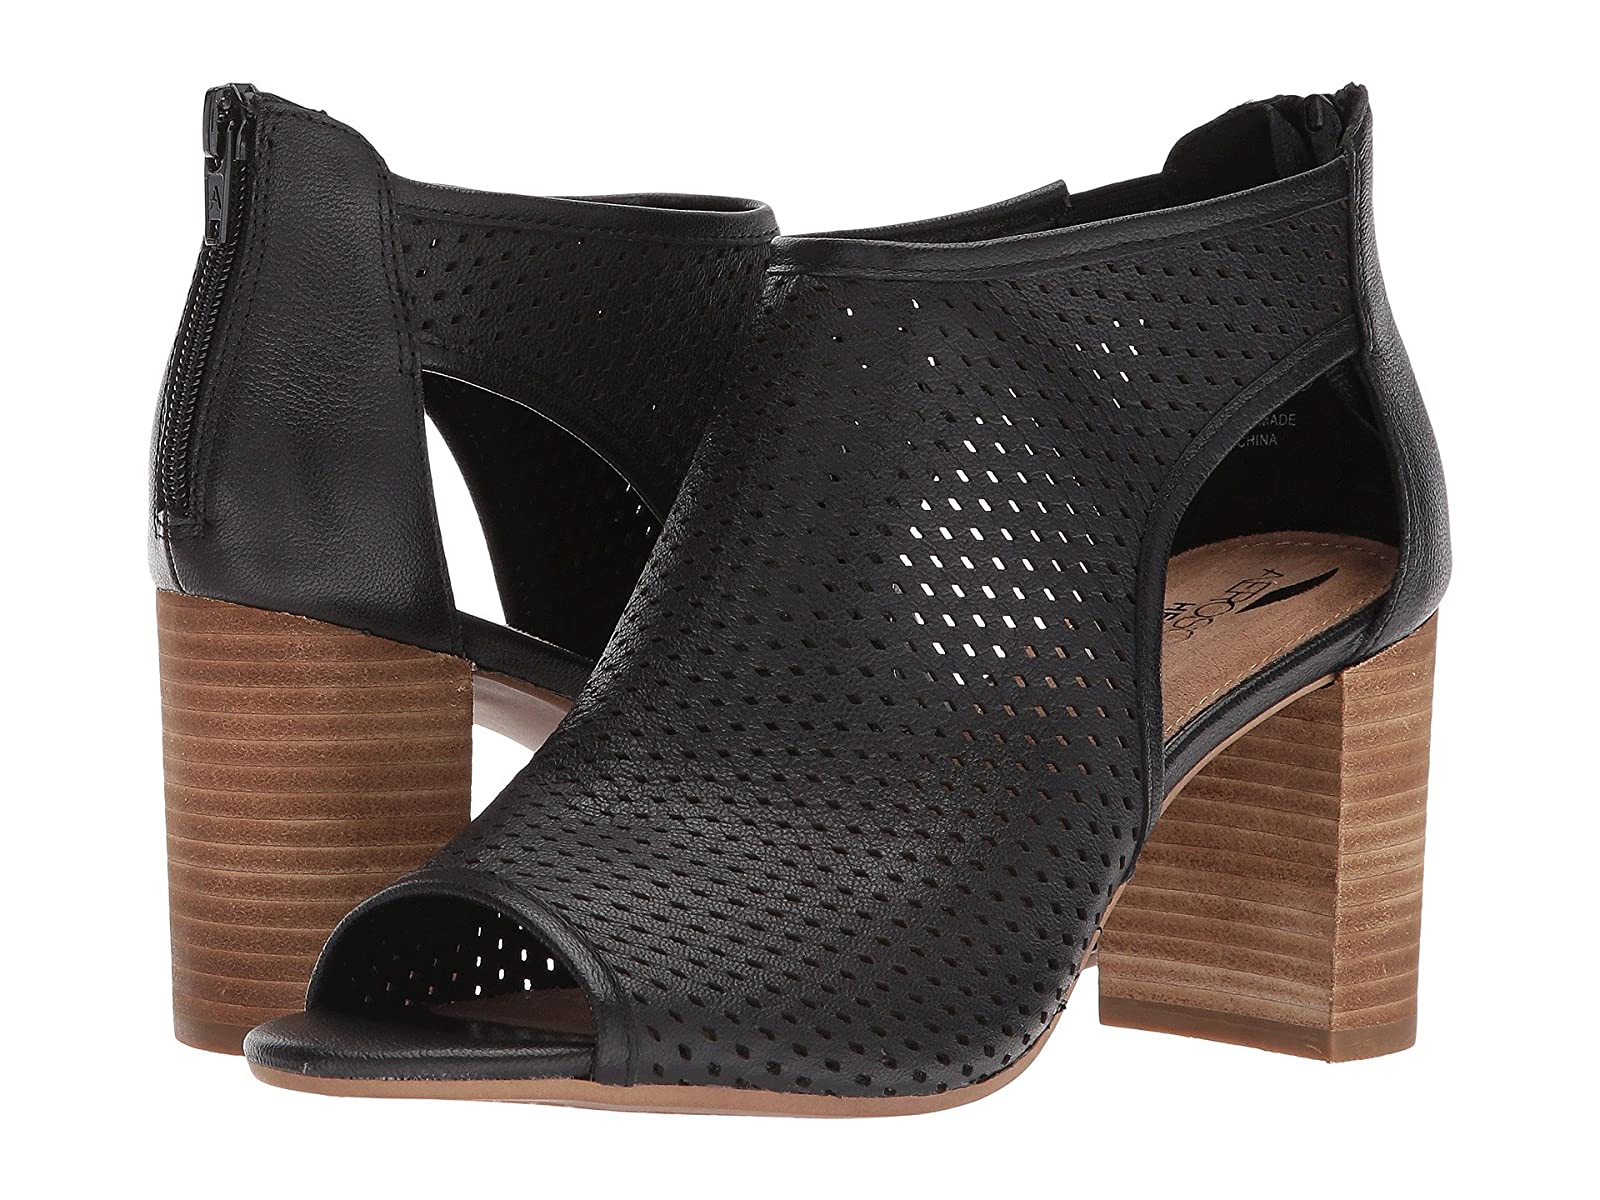 Aerosoles High FrequencyCheap and distinctive eye-catching shoes